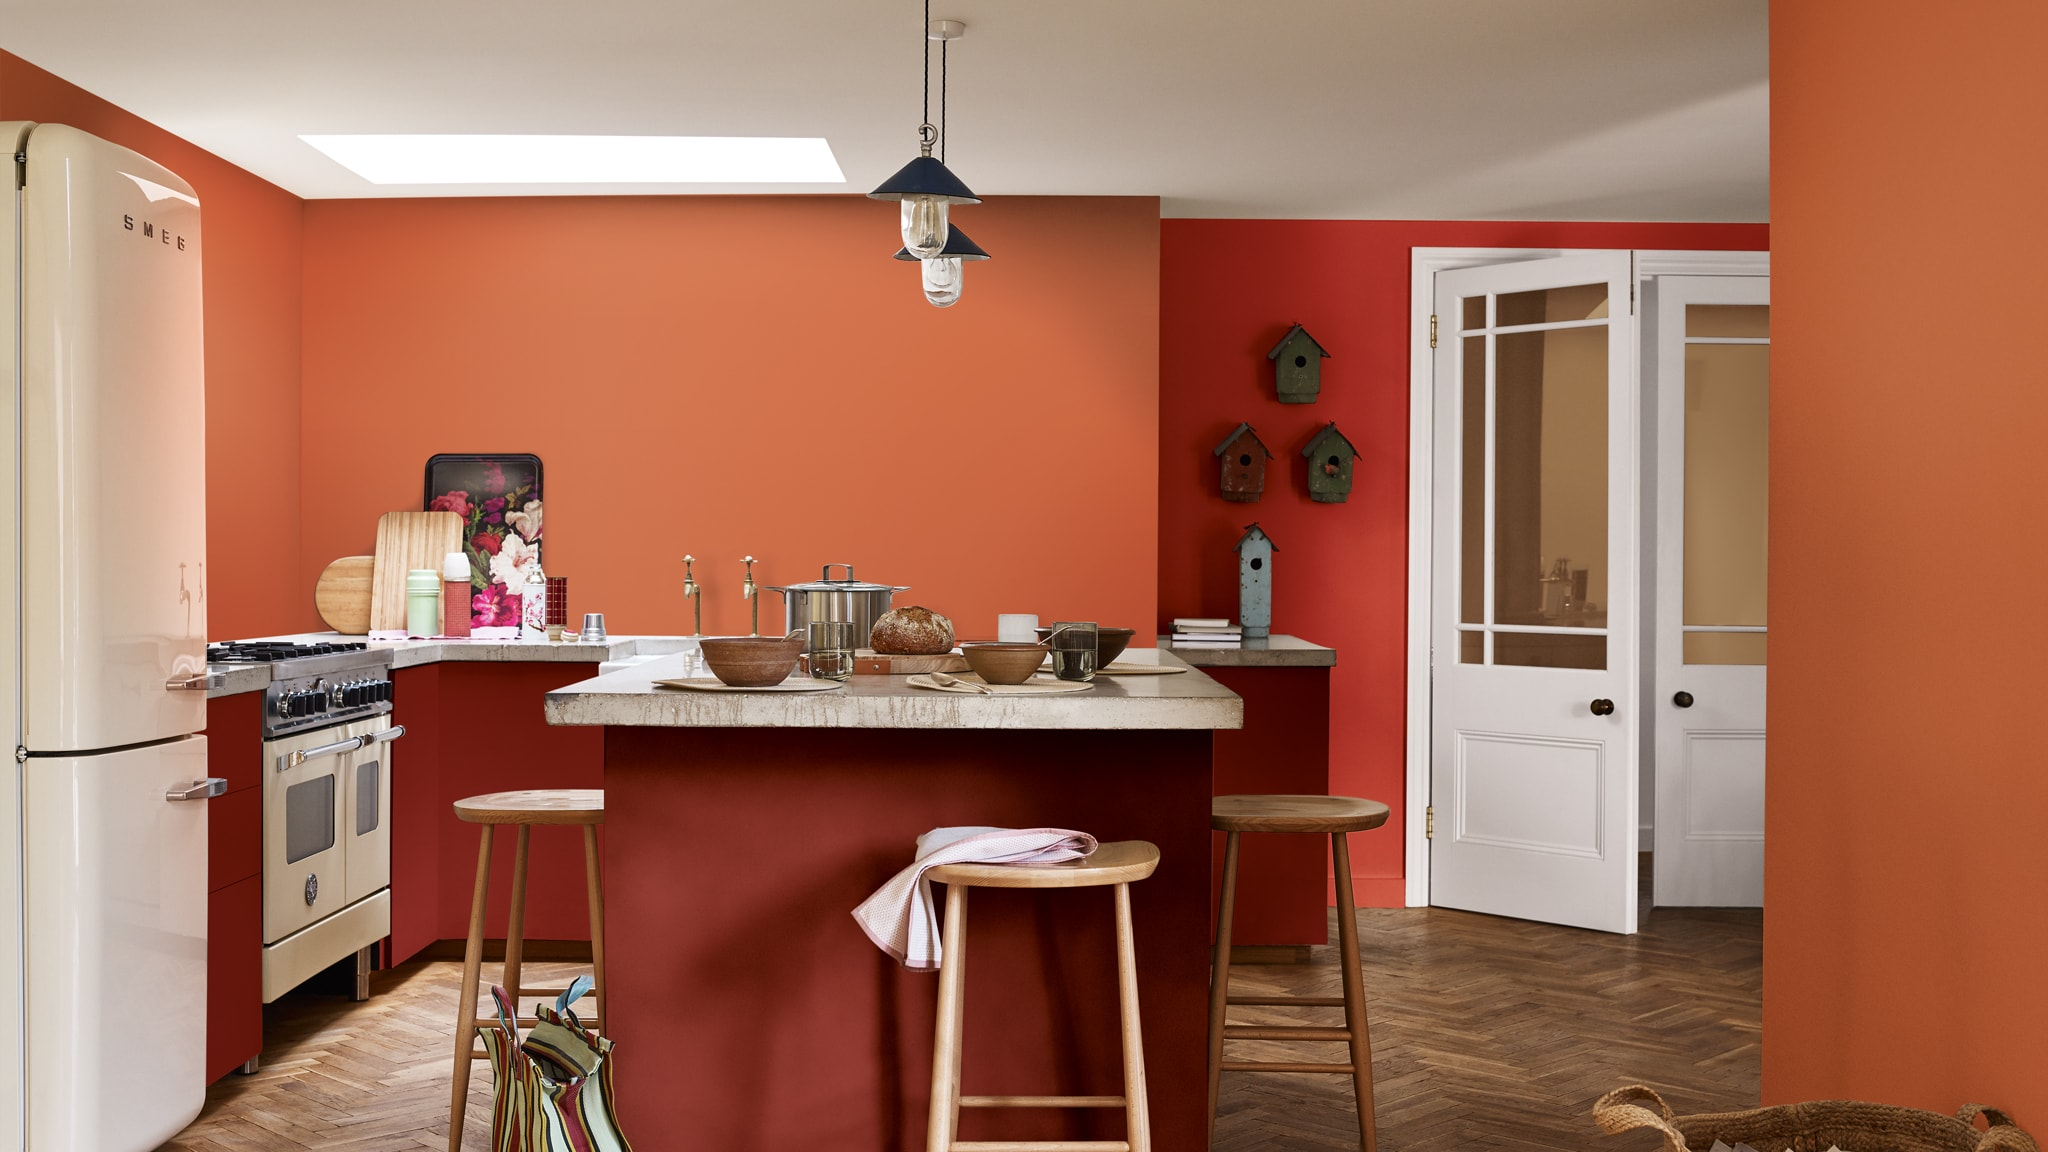 Deco-Paints-Colour-Futures-Colour-of-the-Year-2019-A-place-to-love-Kitchen-Inspiration-48